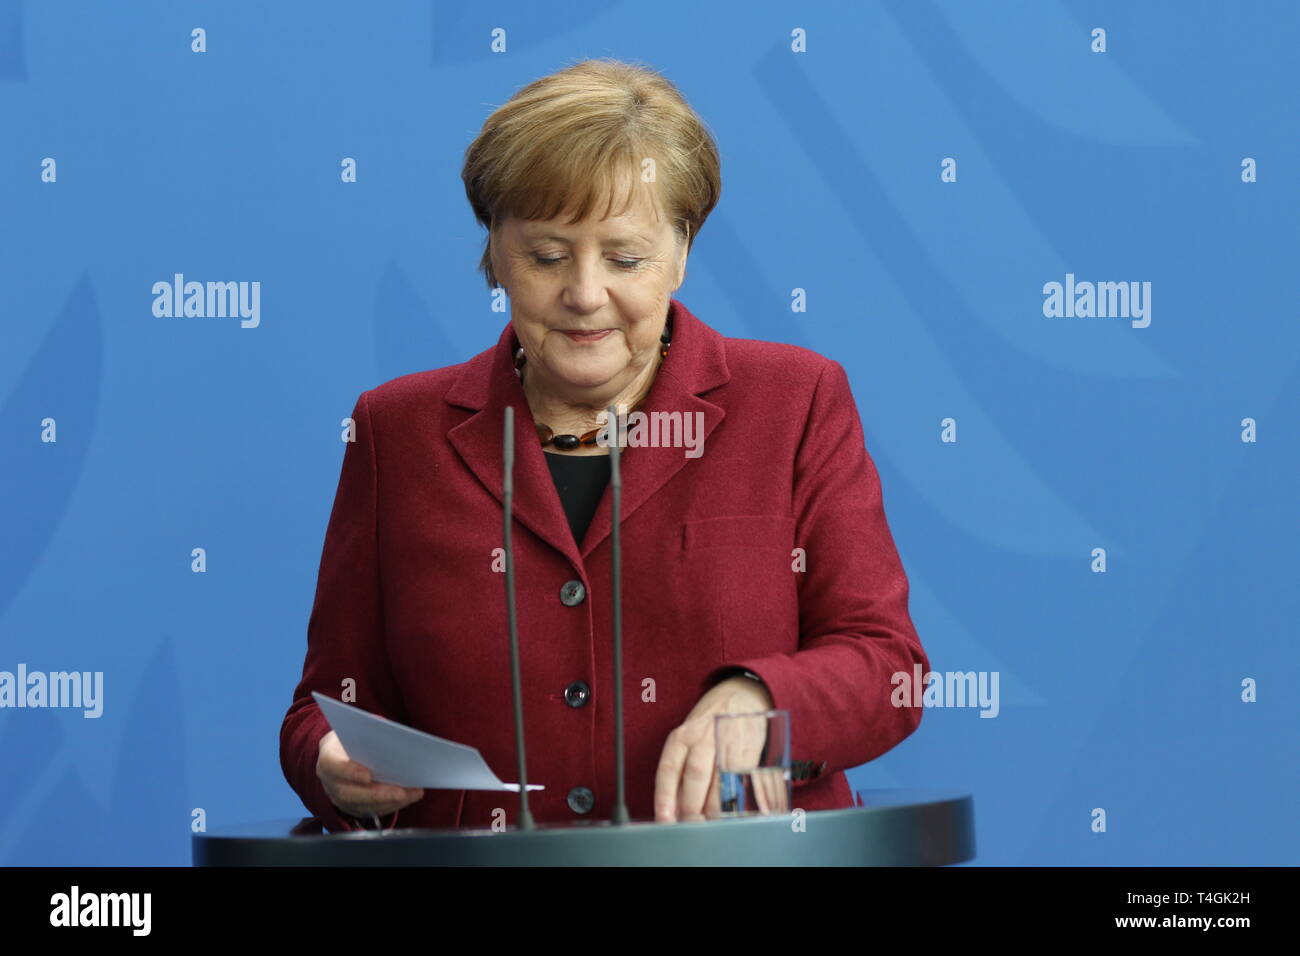 16.04.2019, Berlin, Germany, Chancellor Angela Merkel in statements to the press in the Chancellery. - Stock Image